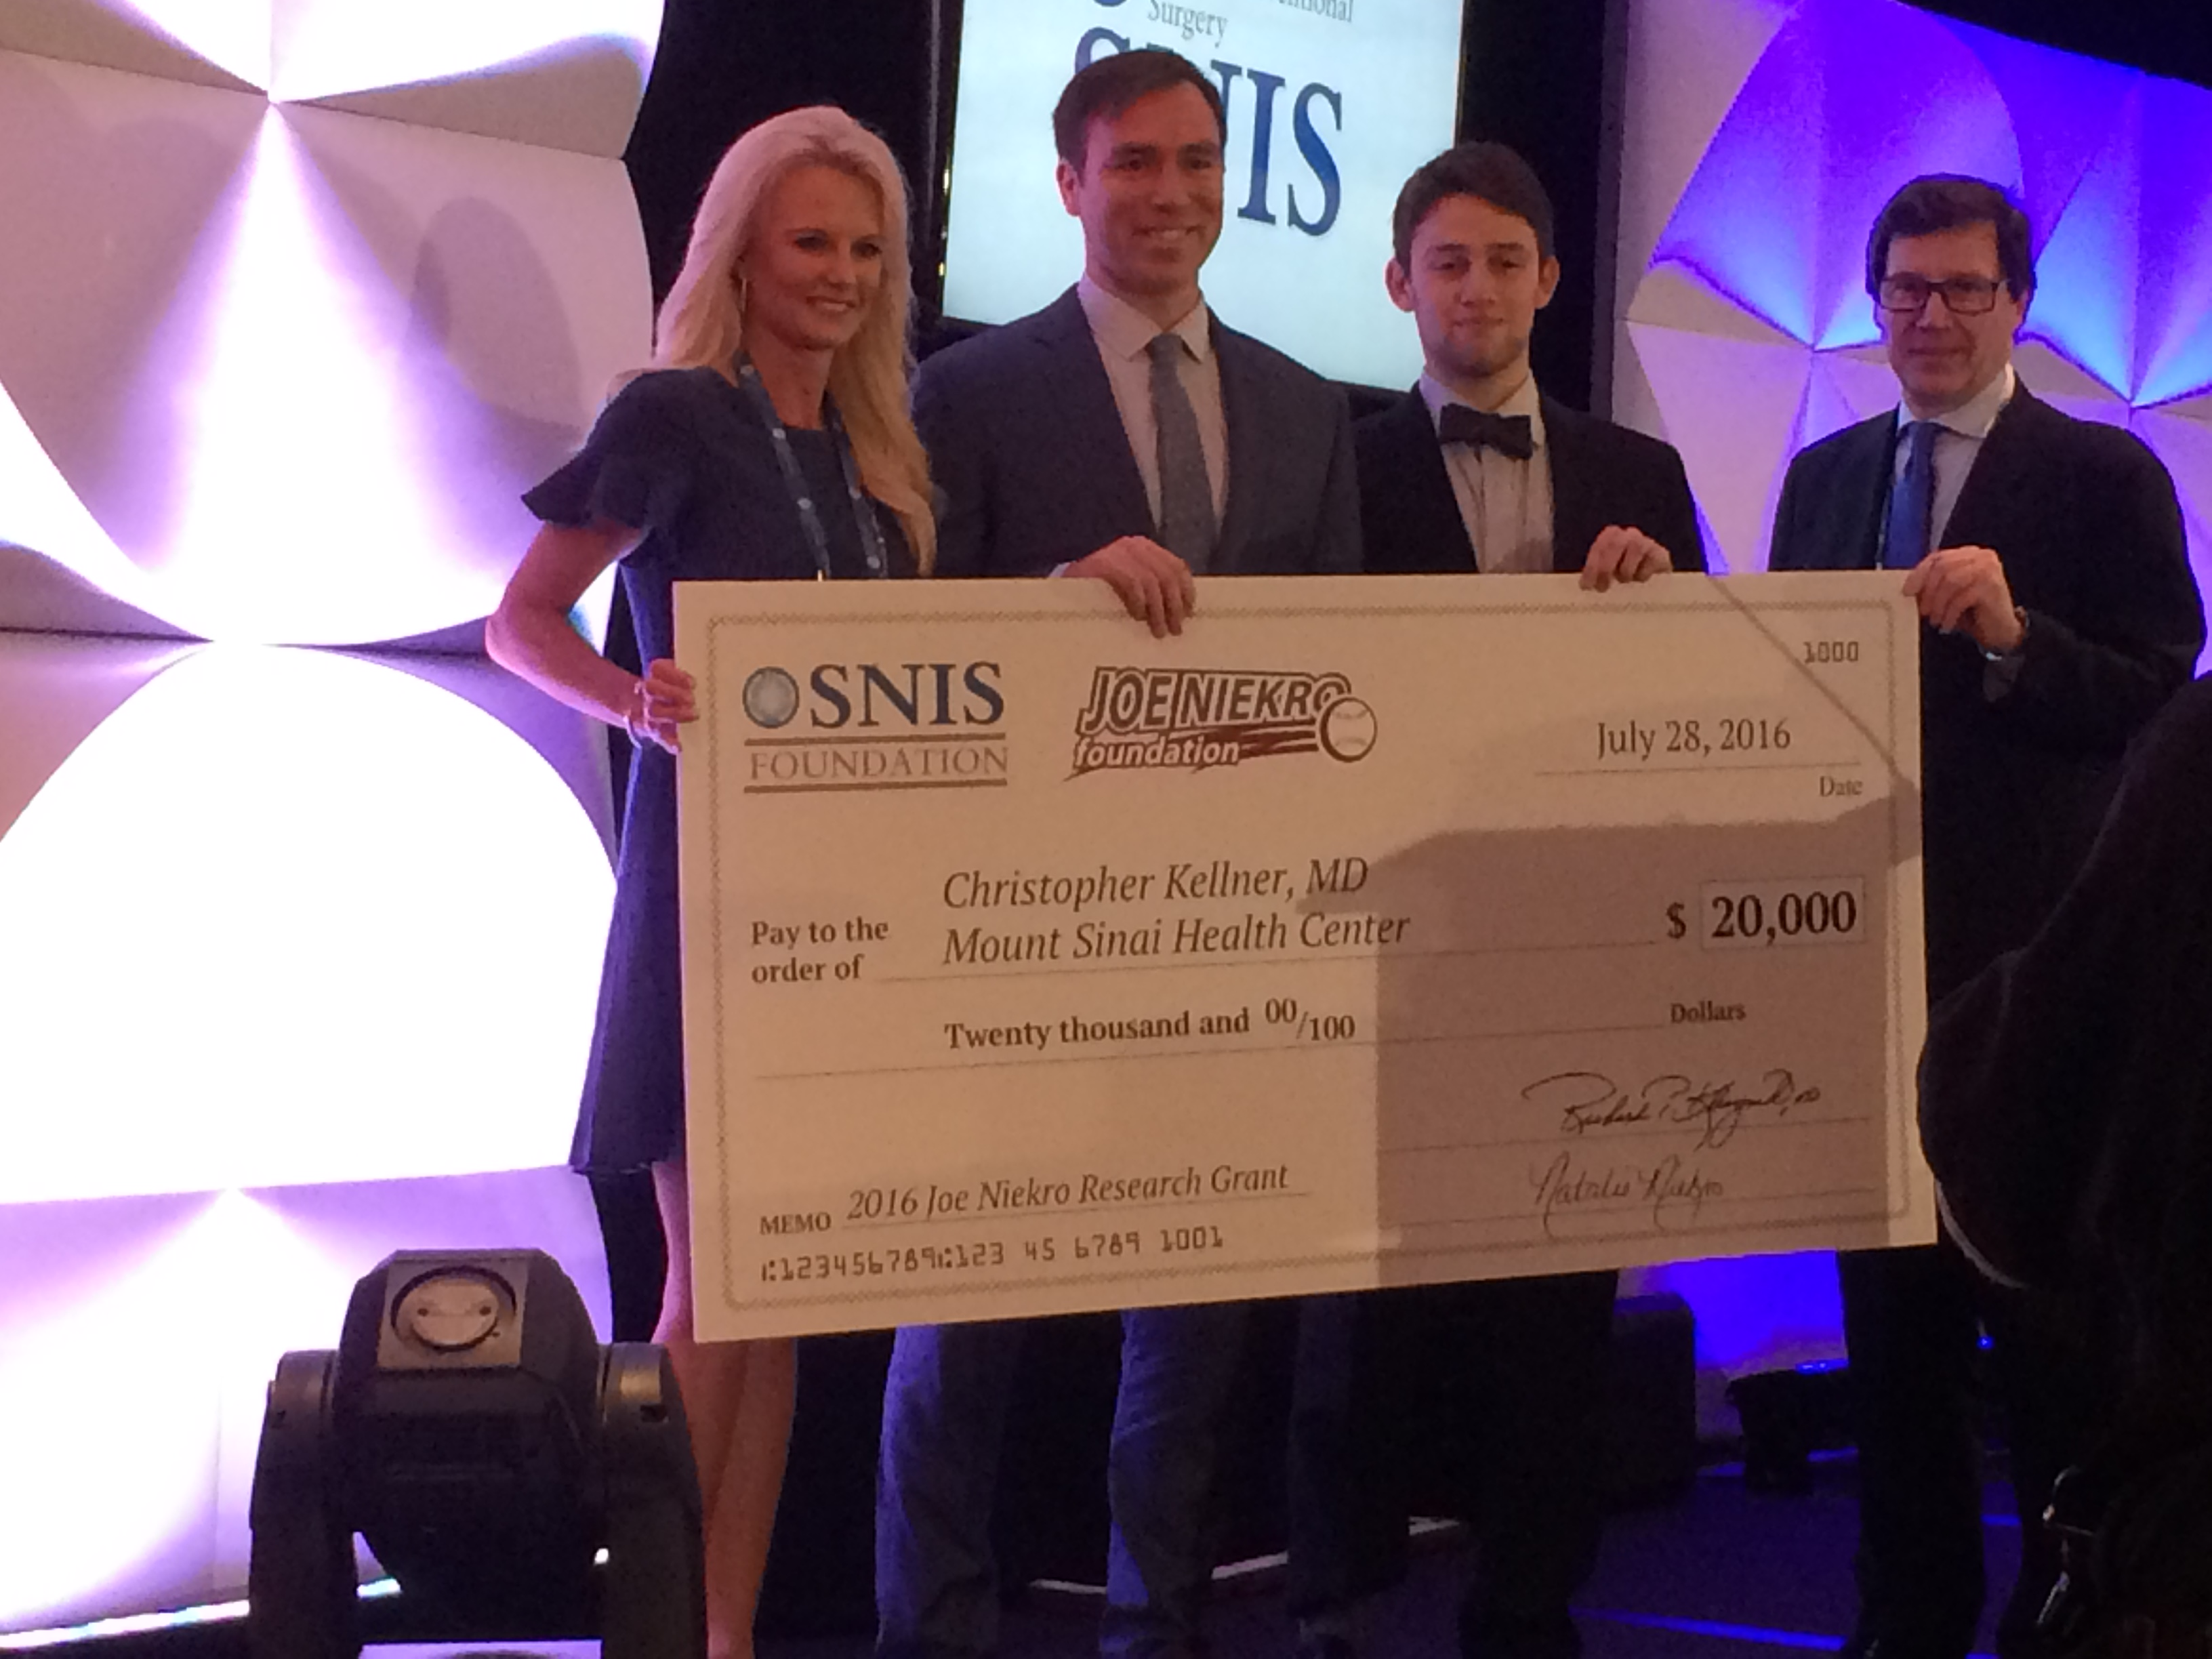 https://www.joeniekrofoundation.com/aneurysms/jnf-awards-three-seed-grants-at-2016-snis-annual-meeting/attachment/img_1050/